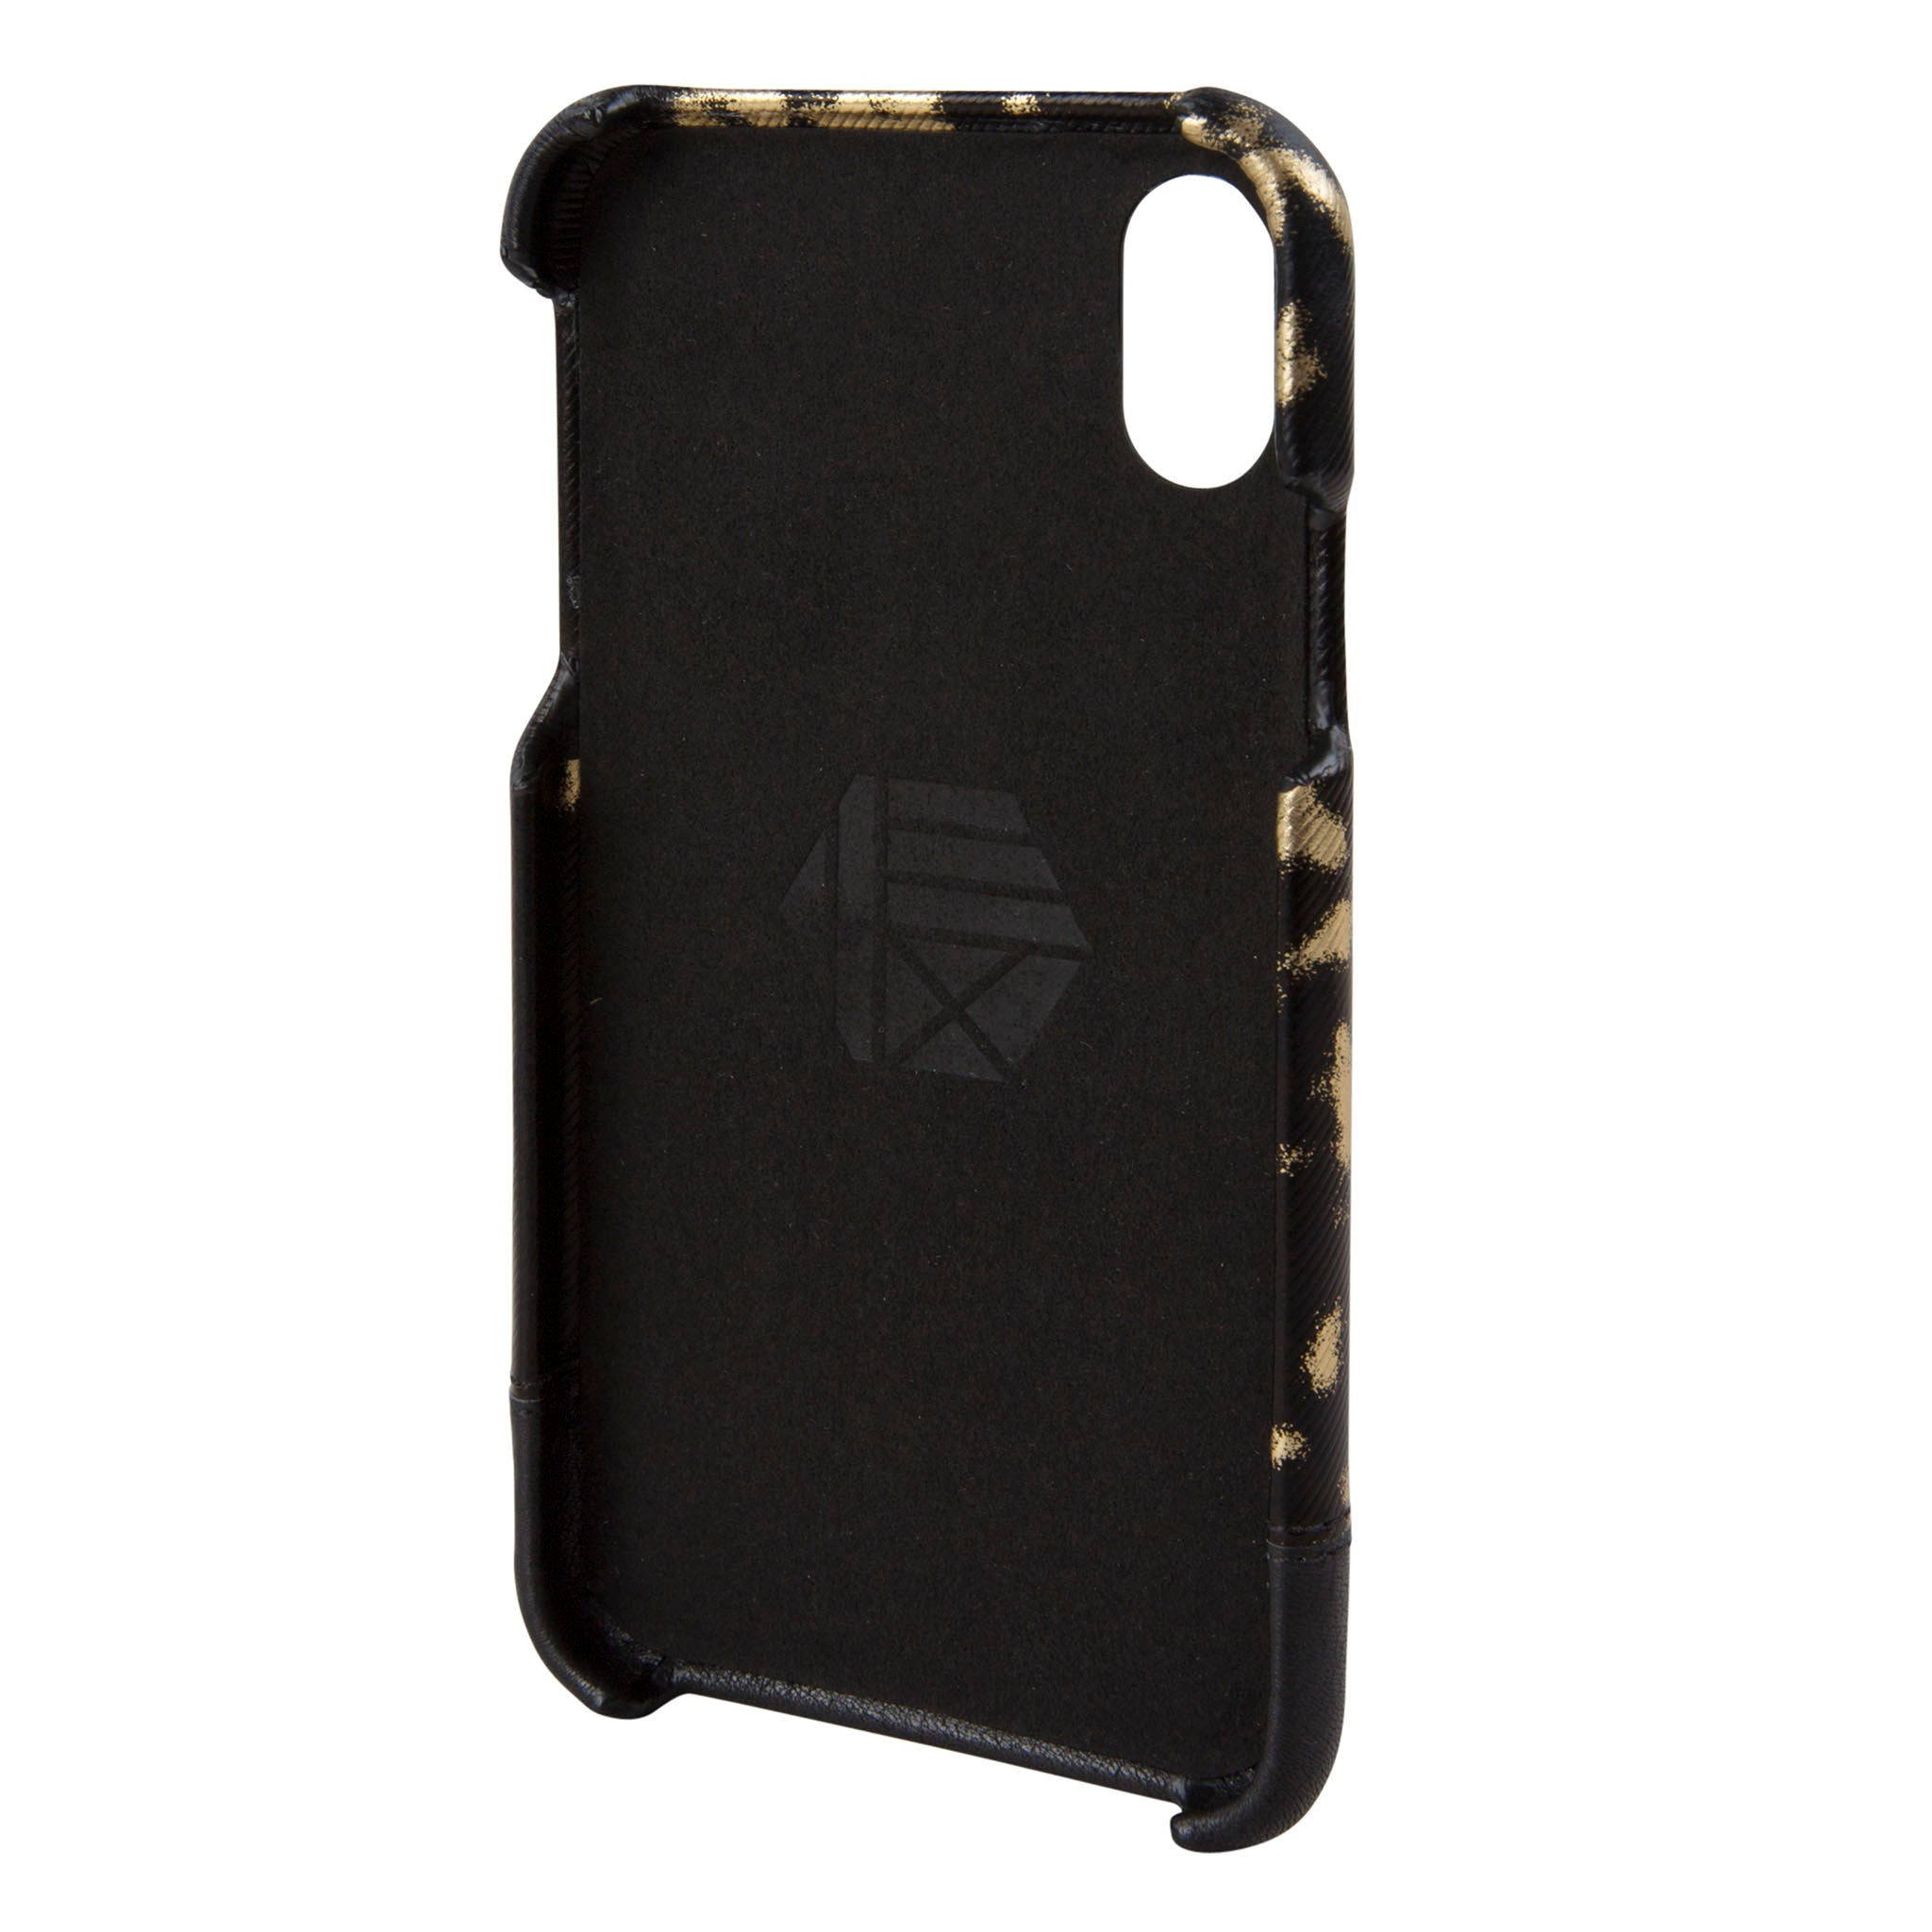 pretty nice 77683 831e2 Black/Gold Leather Focus Case for iPhone X/Xs